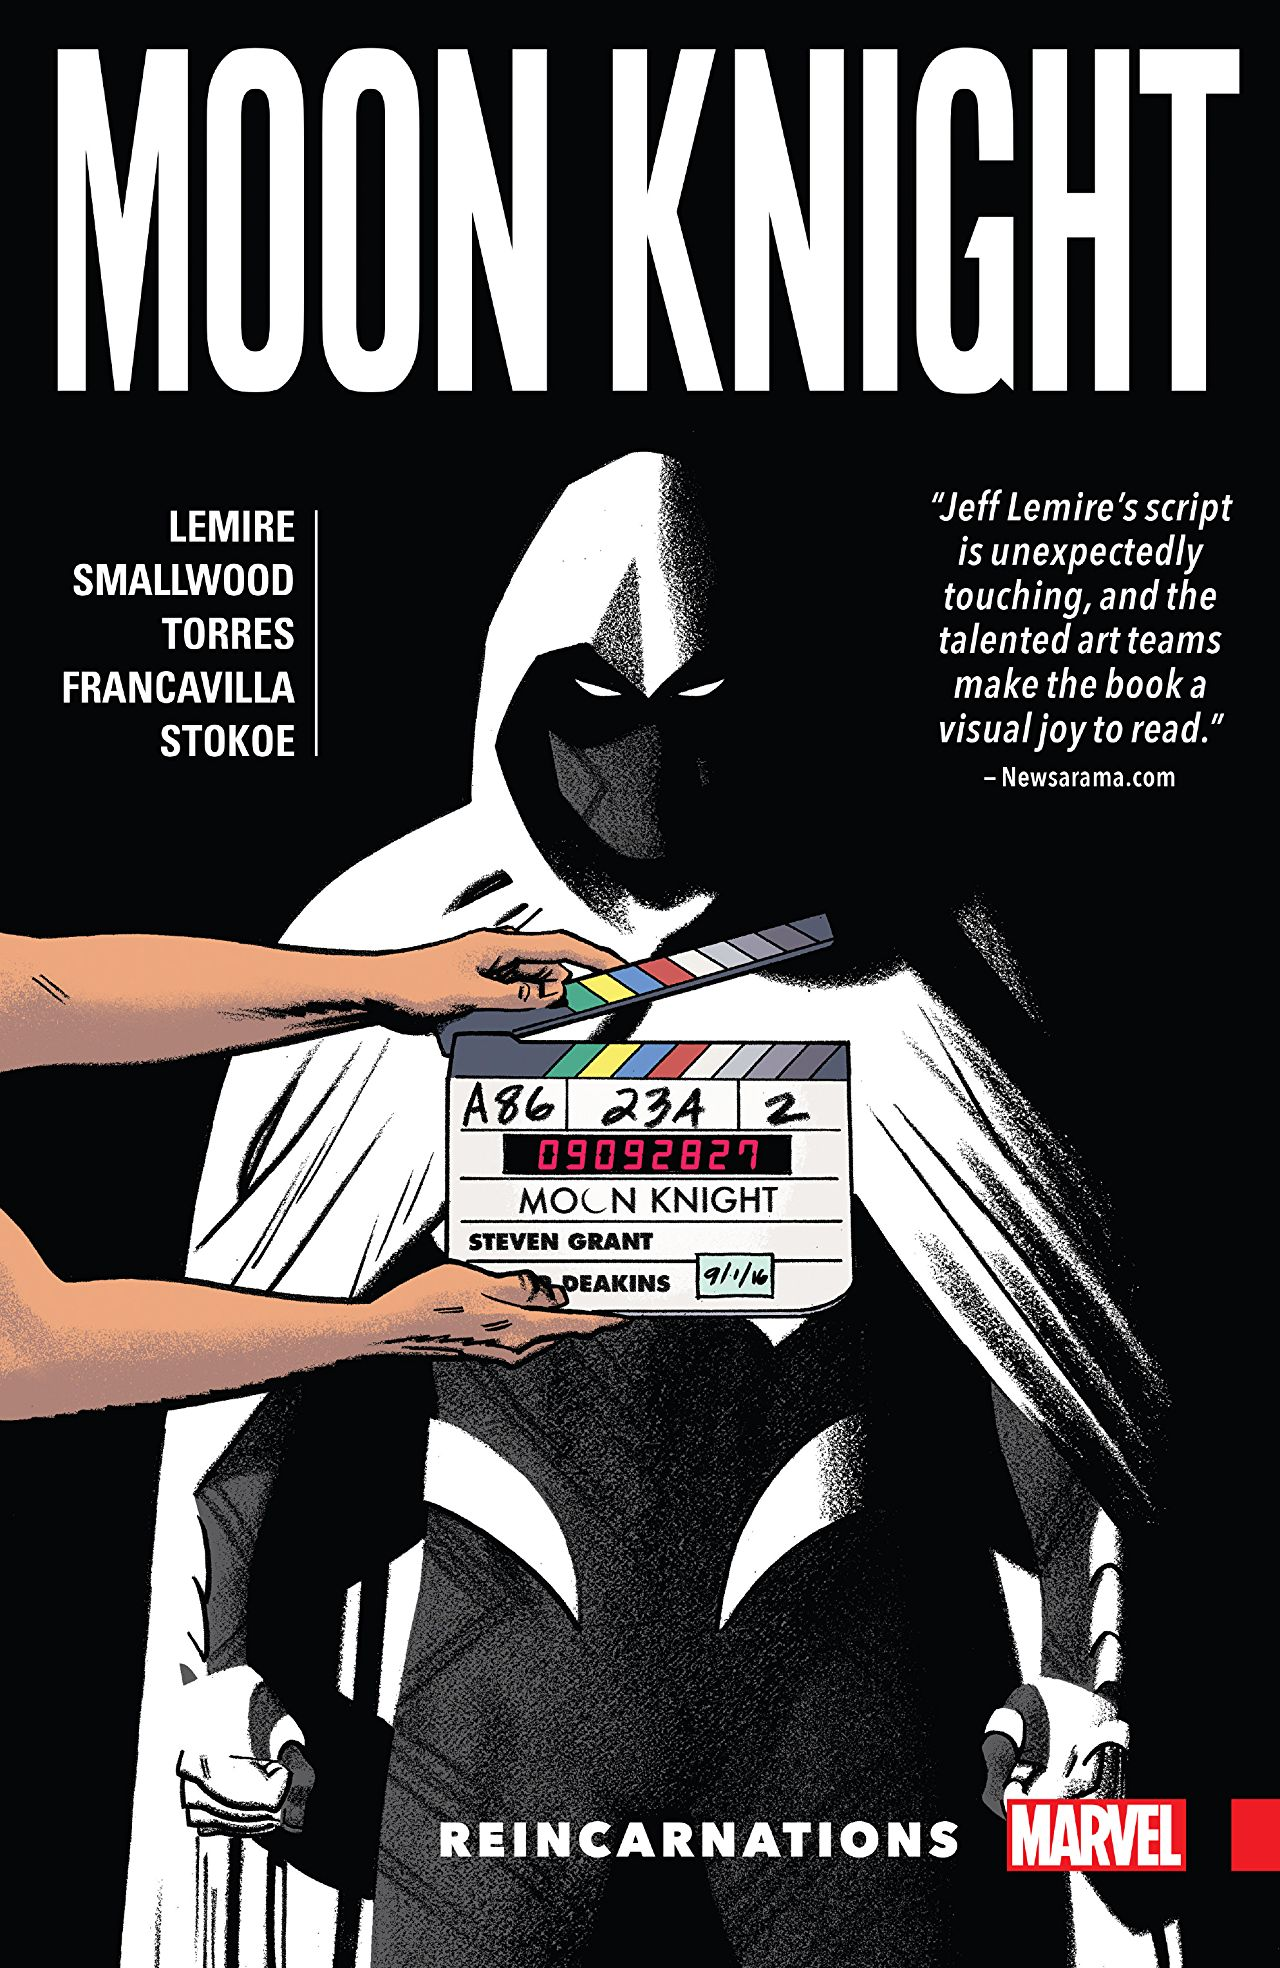 Prescribe This Identity Crisis: 'Moon Knight Vol. 2: Reincarnations' Review